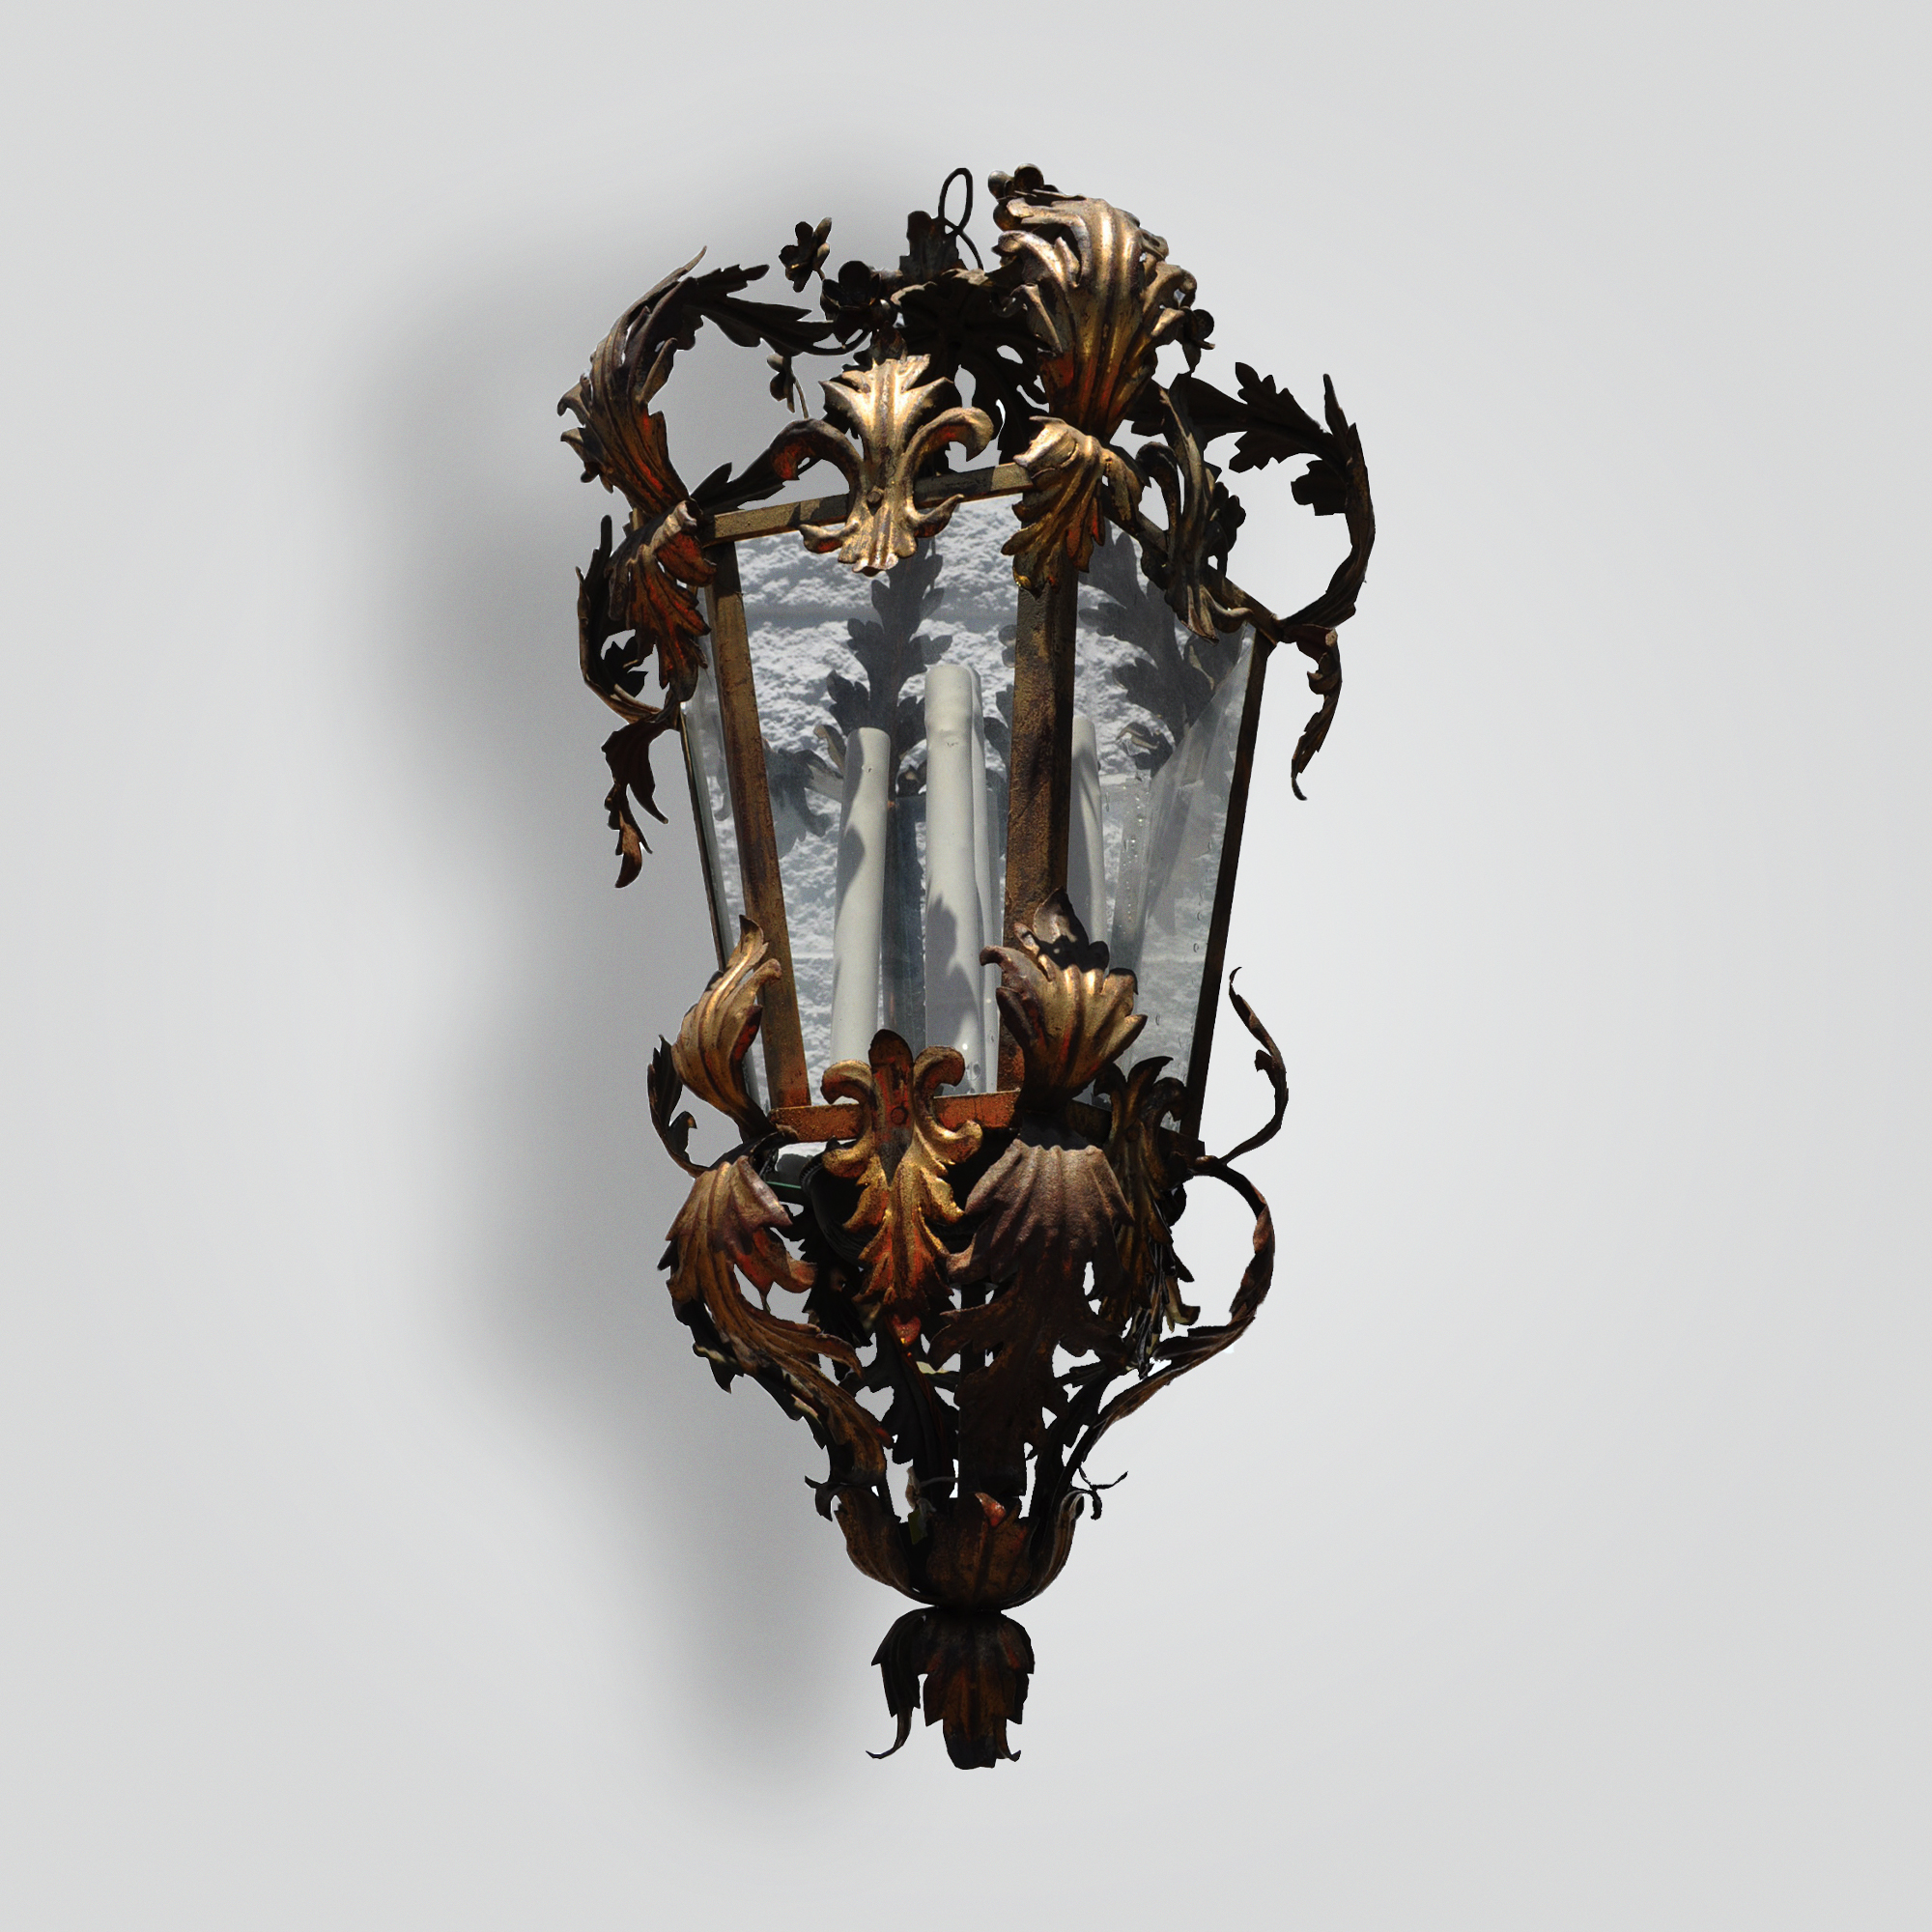 2010-cb4-st-h-sh-italian-pendant-lantern – ADG Lighting Collection